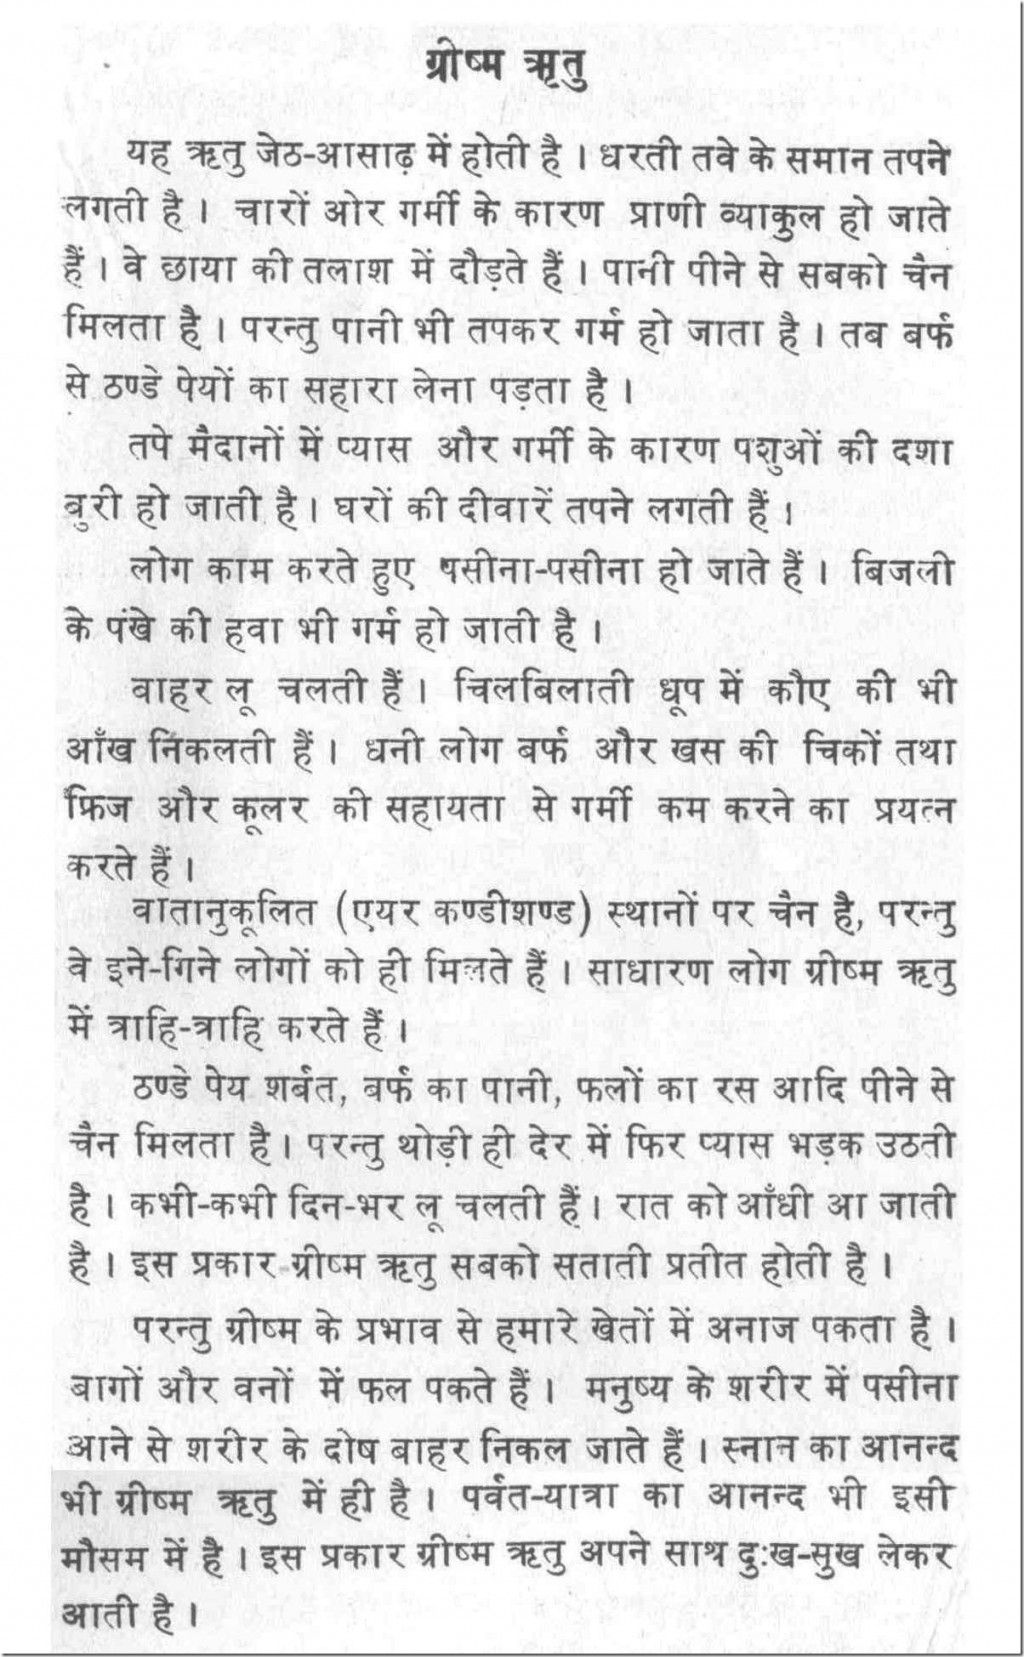 013 Summer Essay Ideas Of Season Fabulous An On Winter In Hindi Unforgettable Vacation Class 2 Urdu Conclusion Large